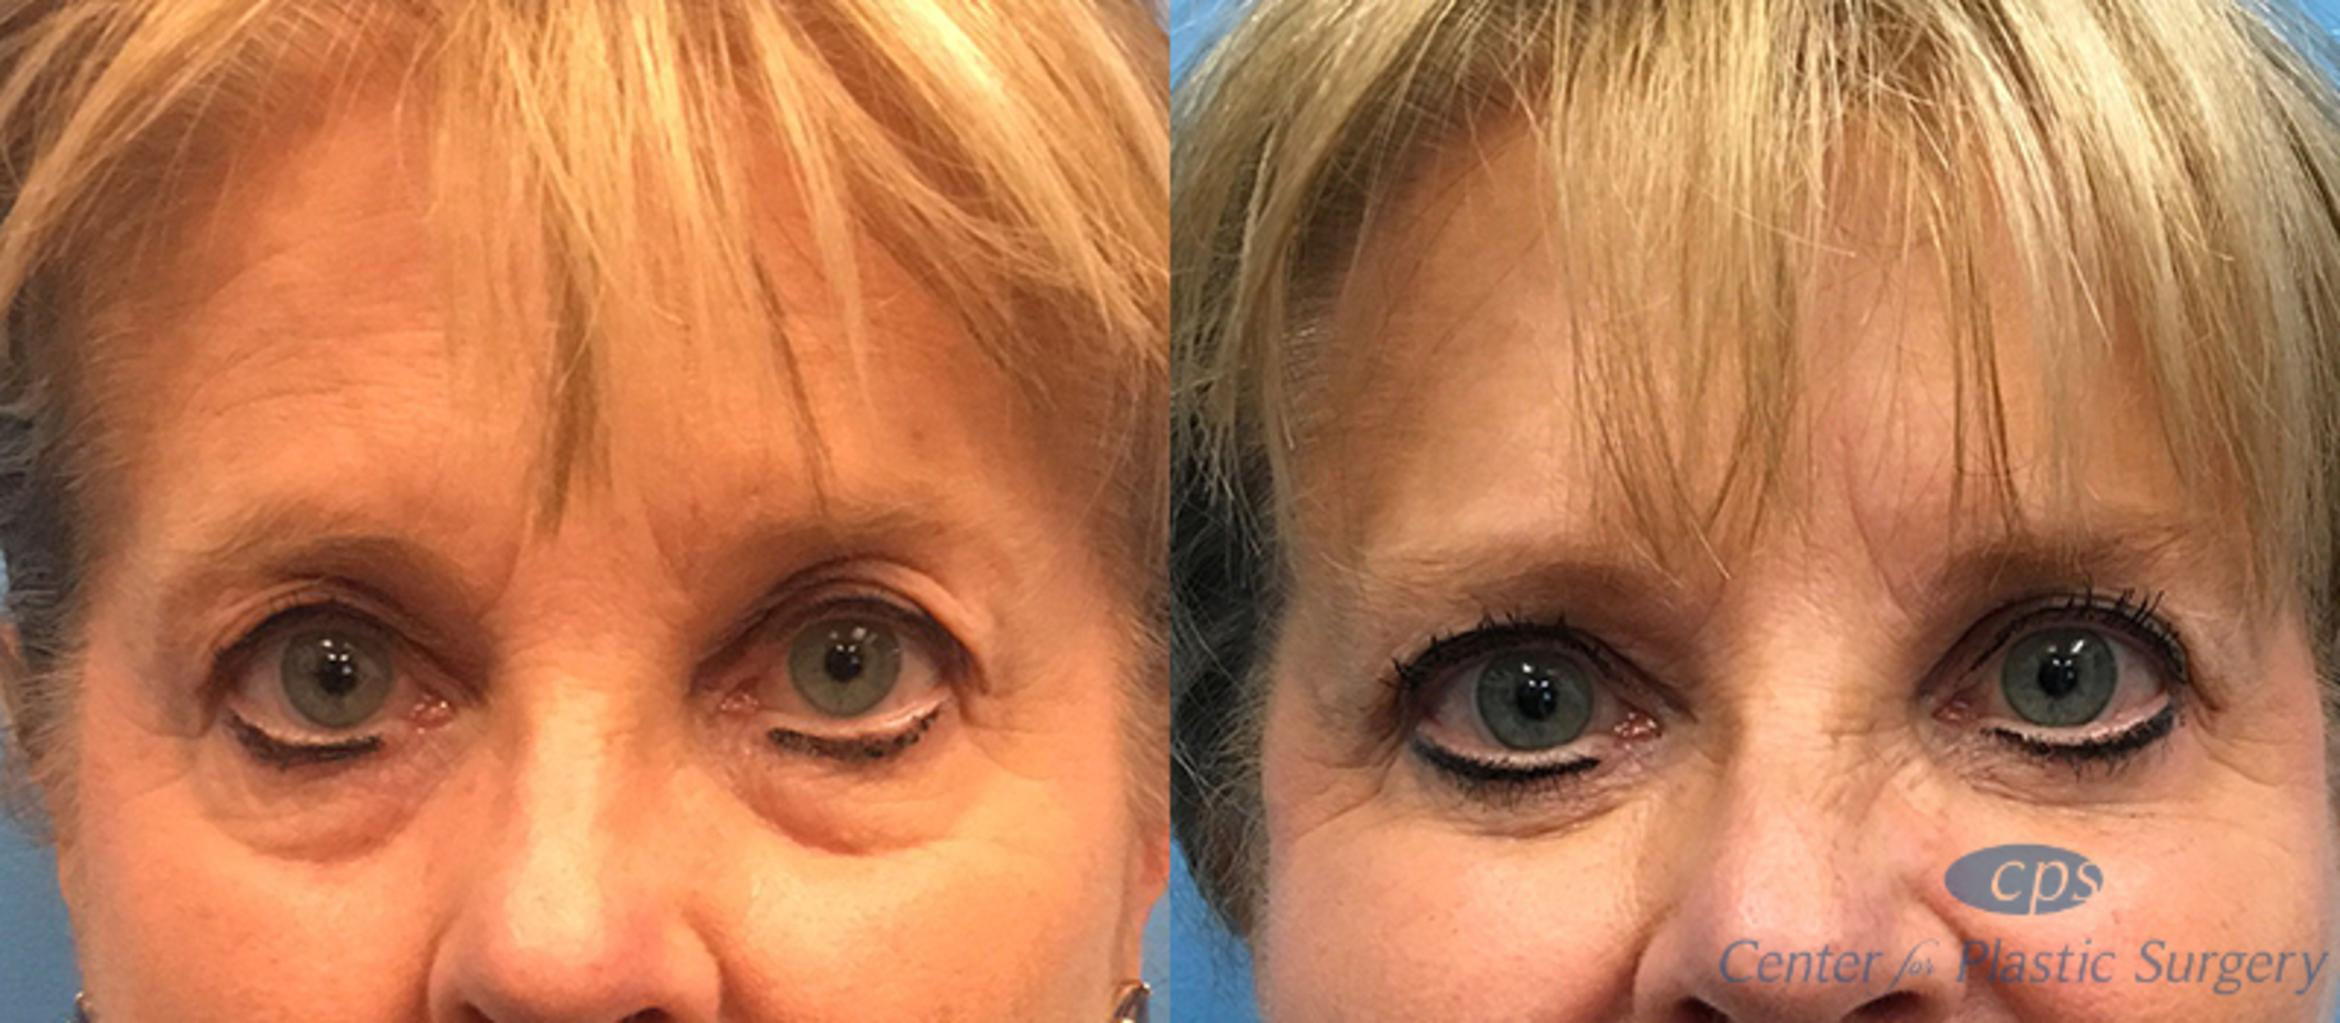 Eyelid Lift Before & After Photo | Annandale, Virginia | Center for Plastic Surgery